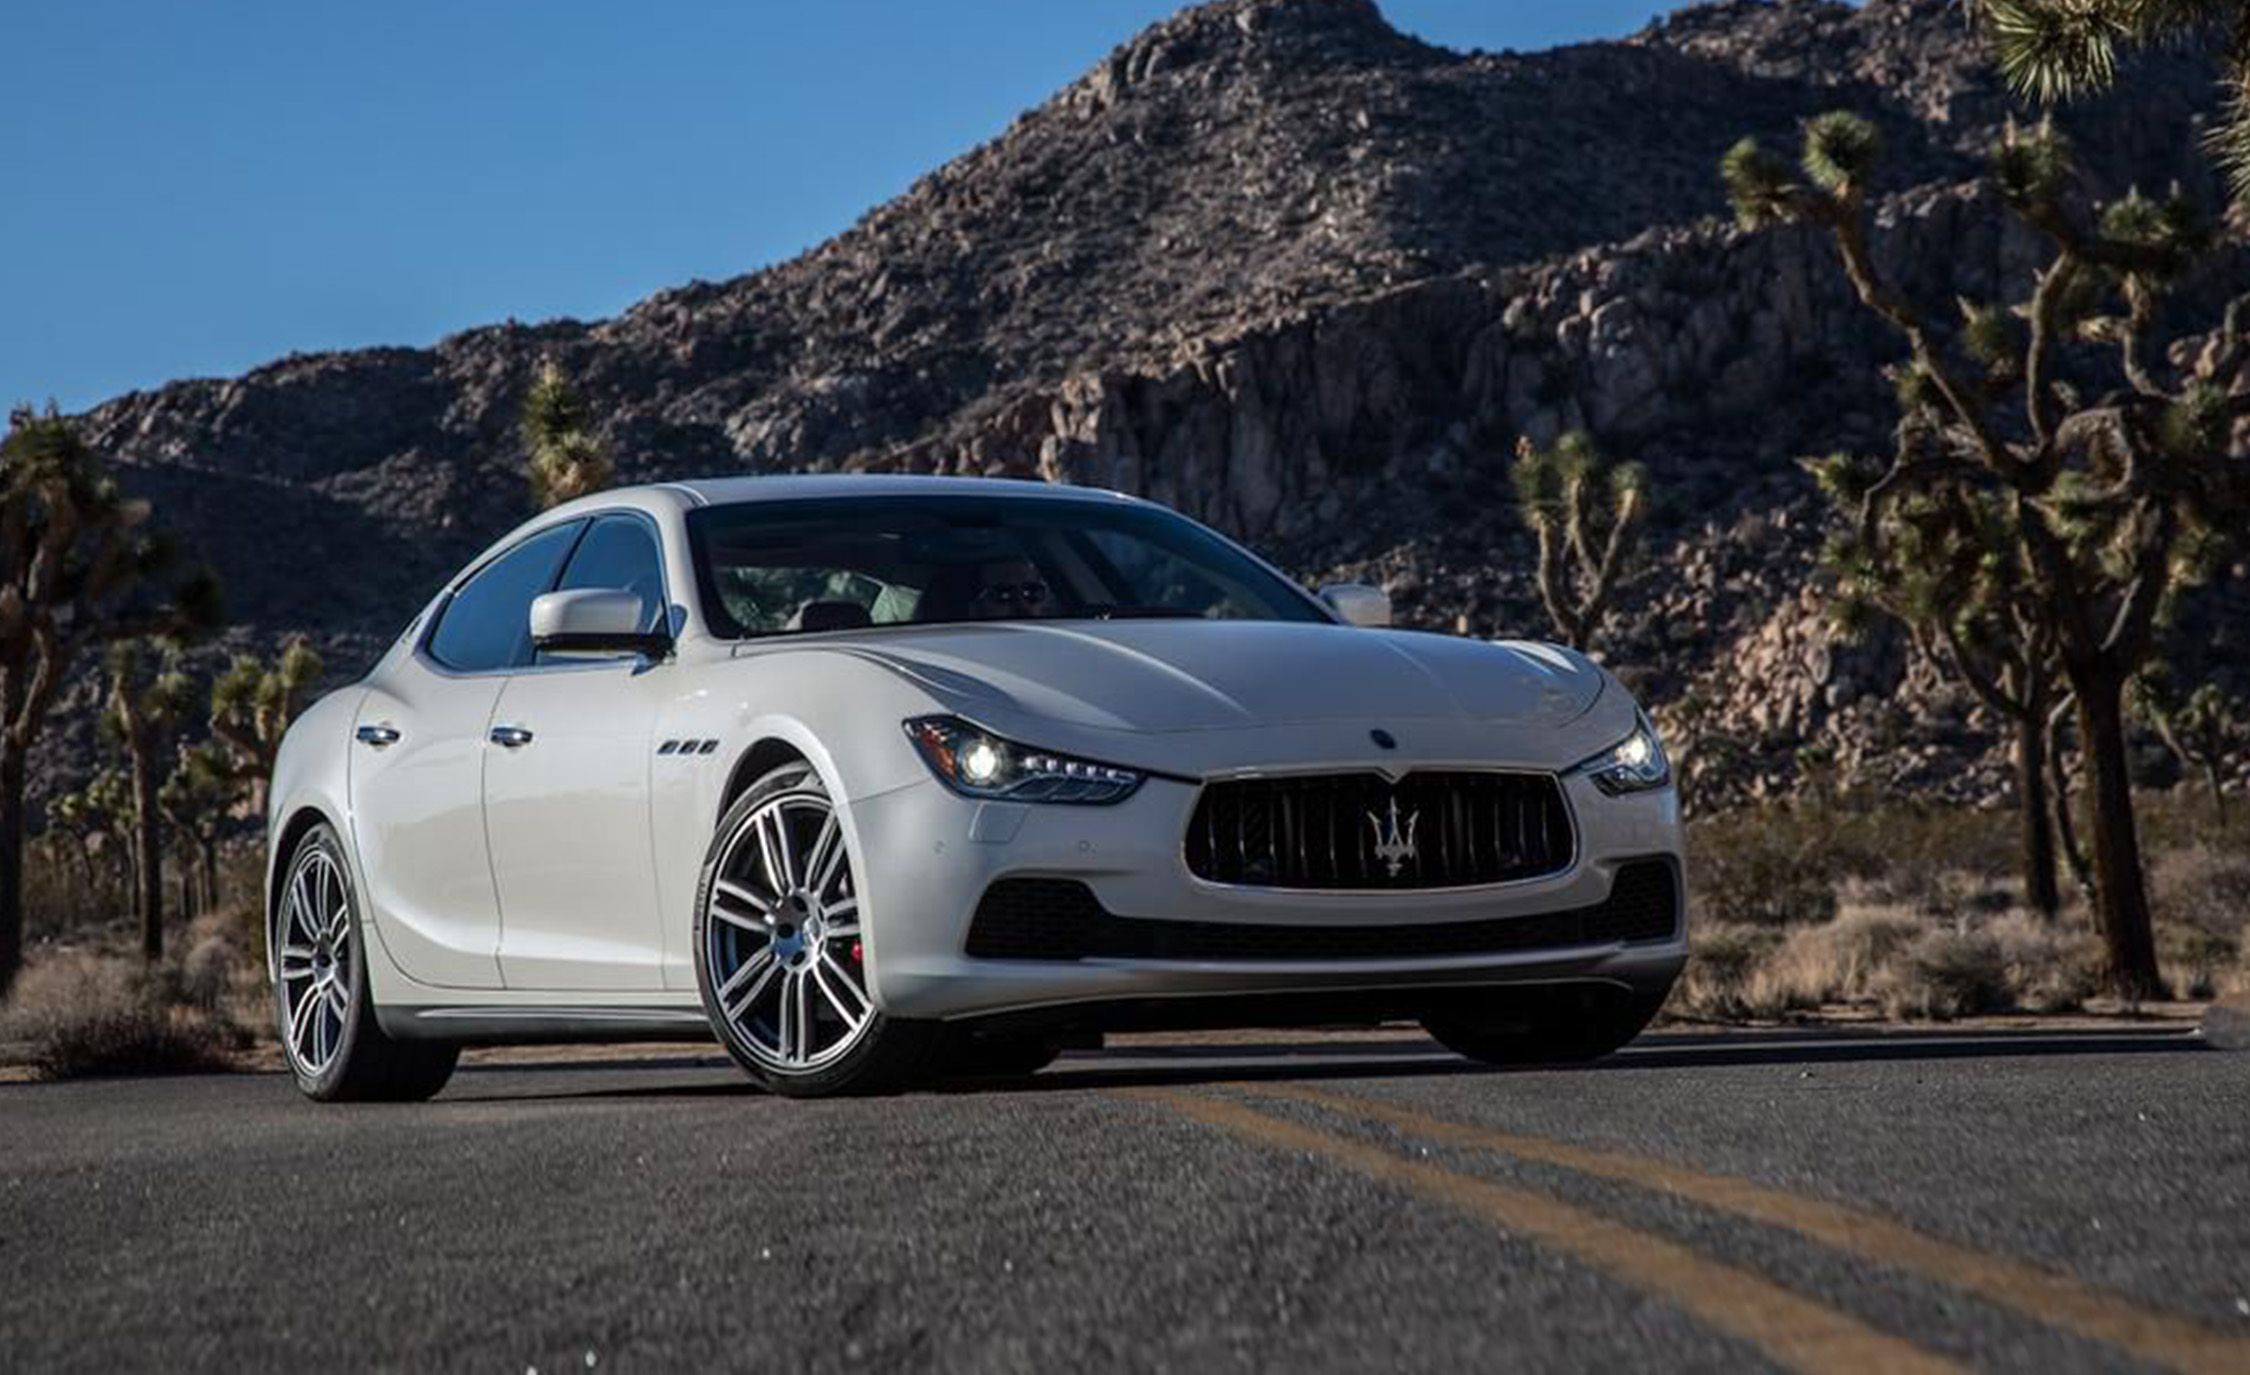 2019 Maserati Ghibli Review, Pricing, and Specs